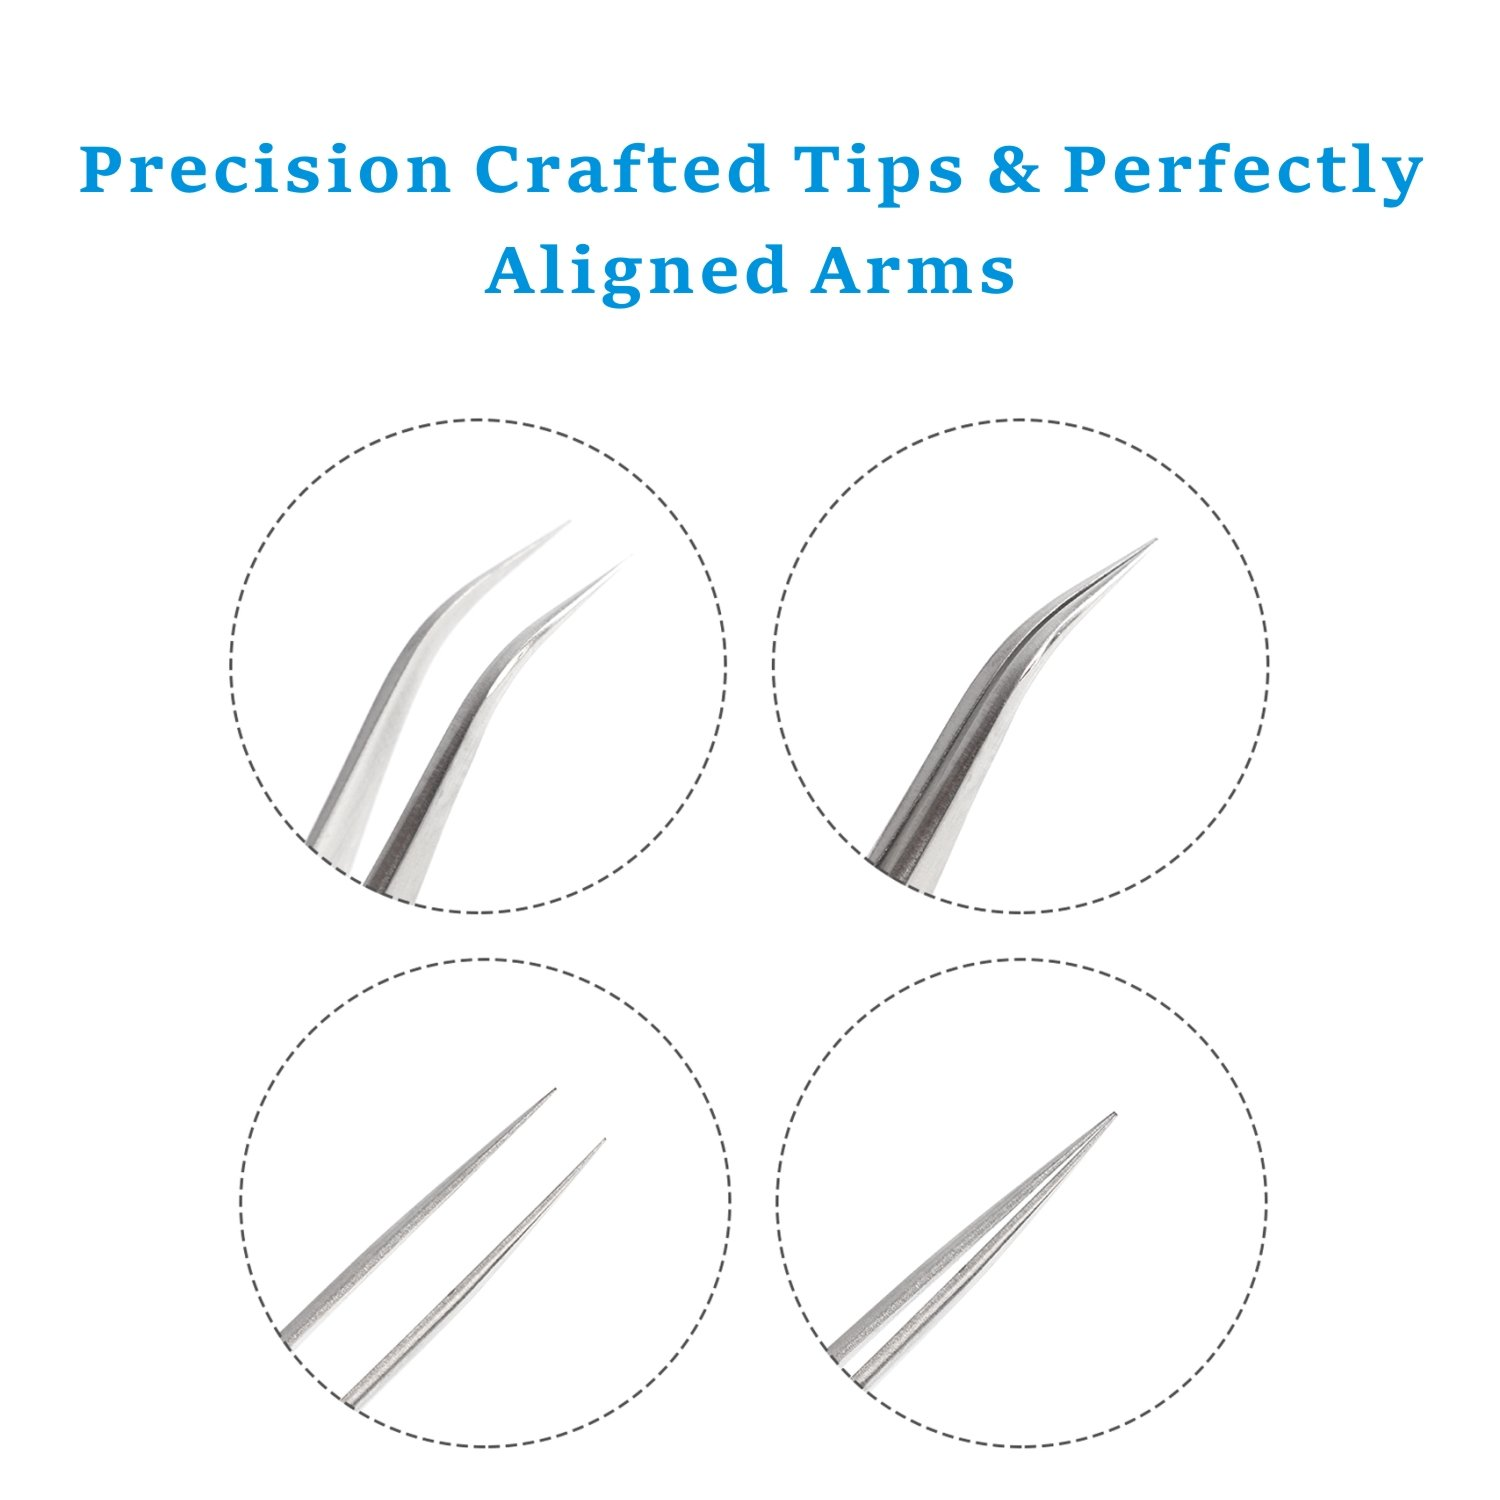 Best Tweezers for Eyelash Extension - Straight and Curved Pointed Tweezers - Professional Stainless Steel Precision Tweezers set - 2 Pcs - Silver - by Nipoo by Nipoo (Image #5)